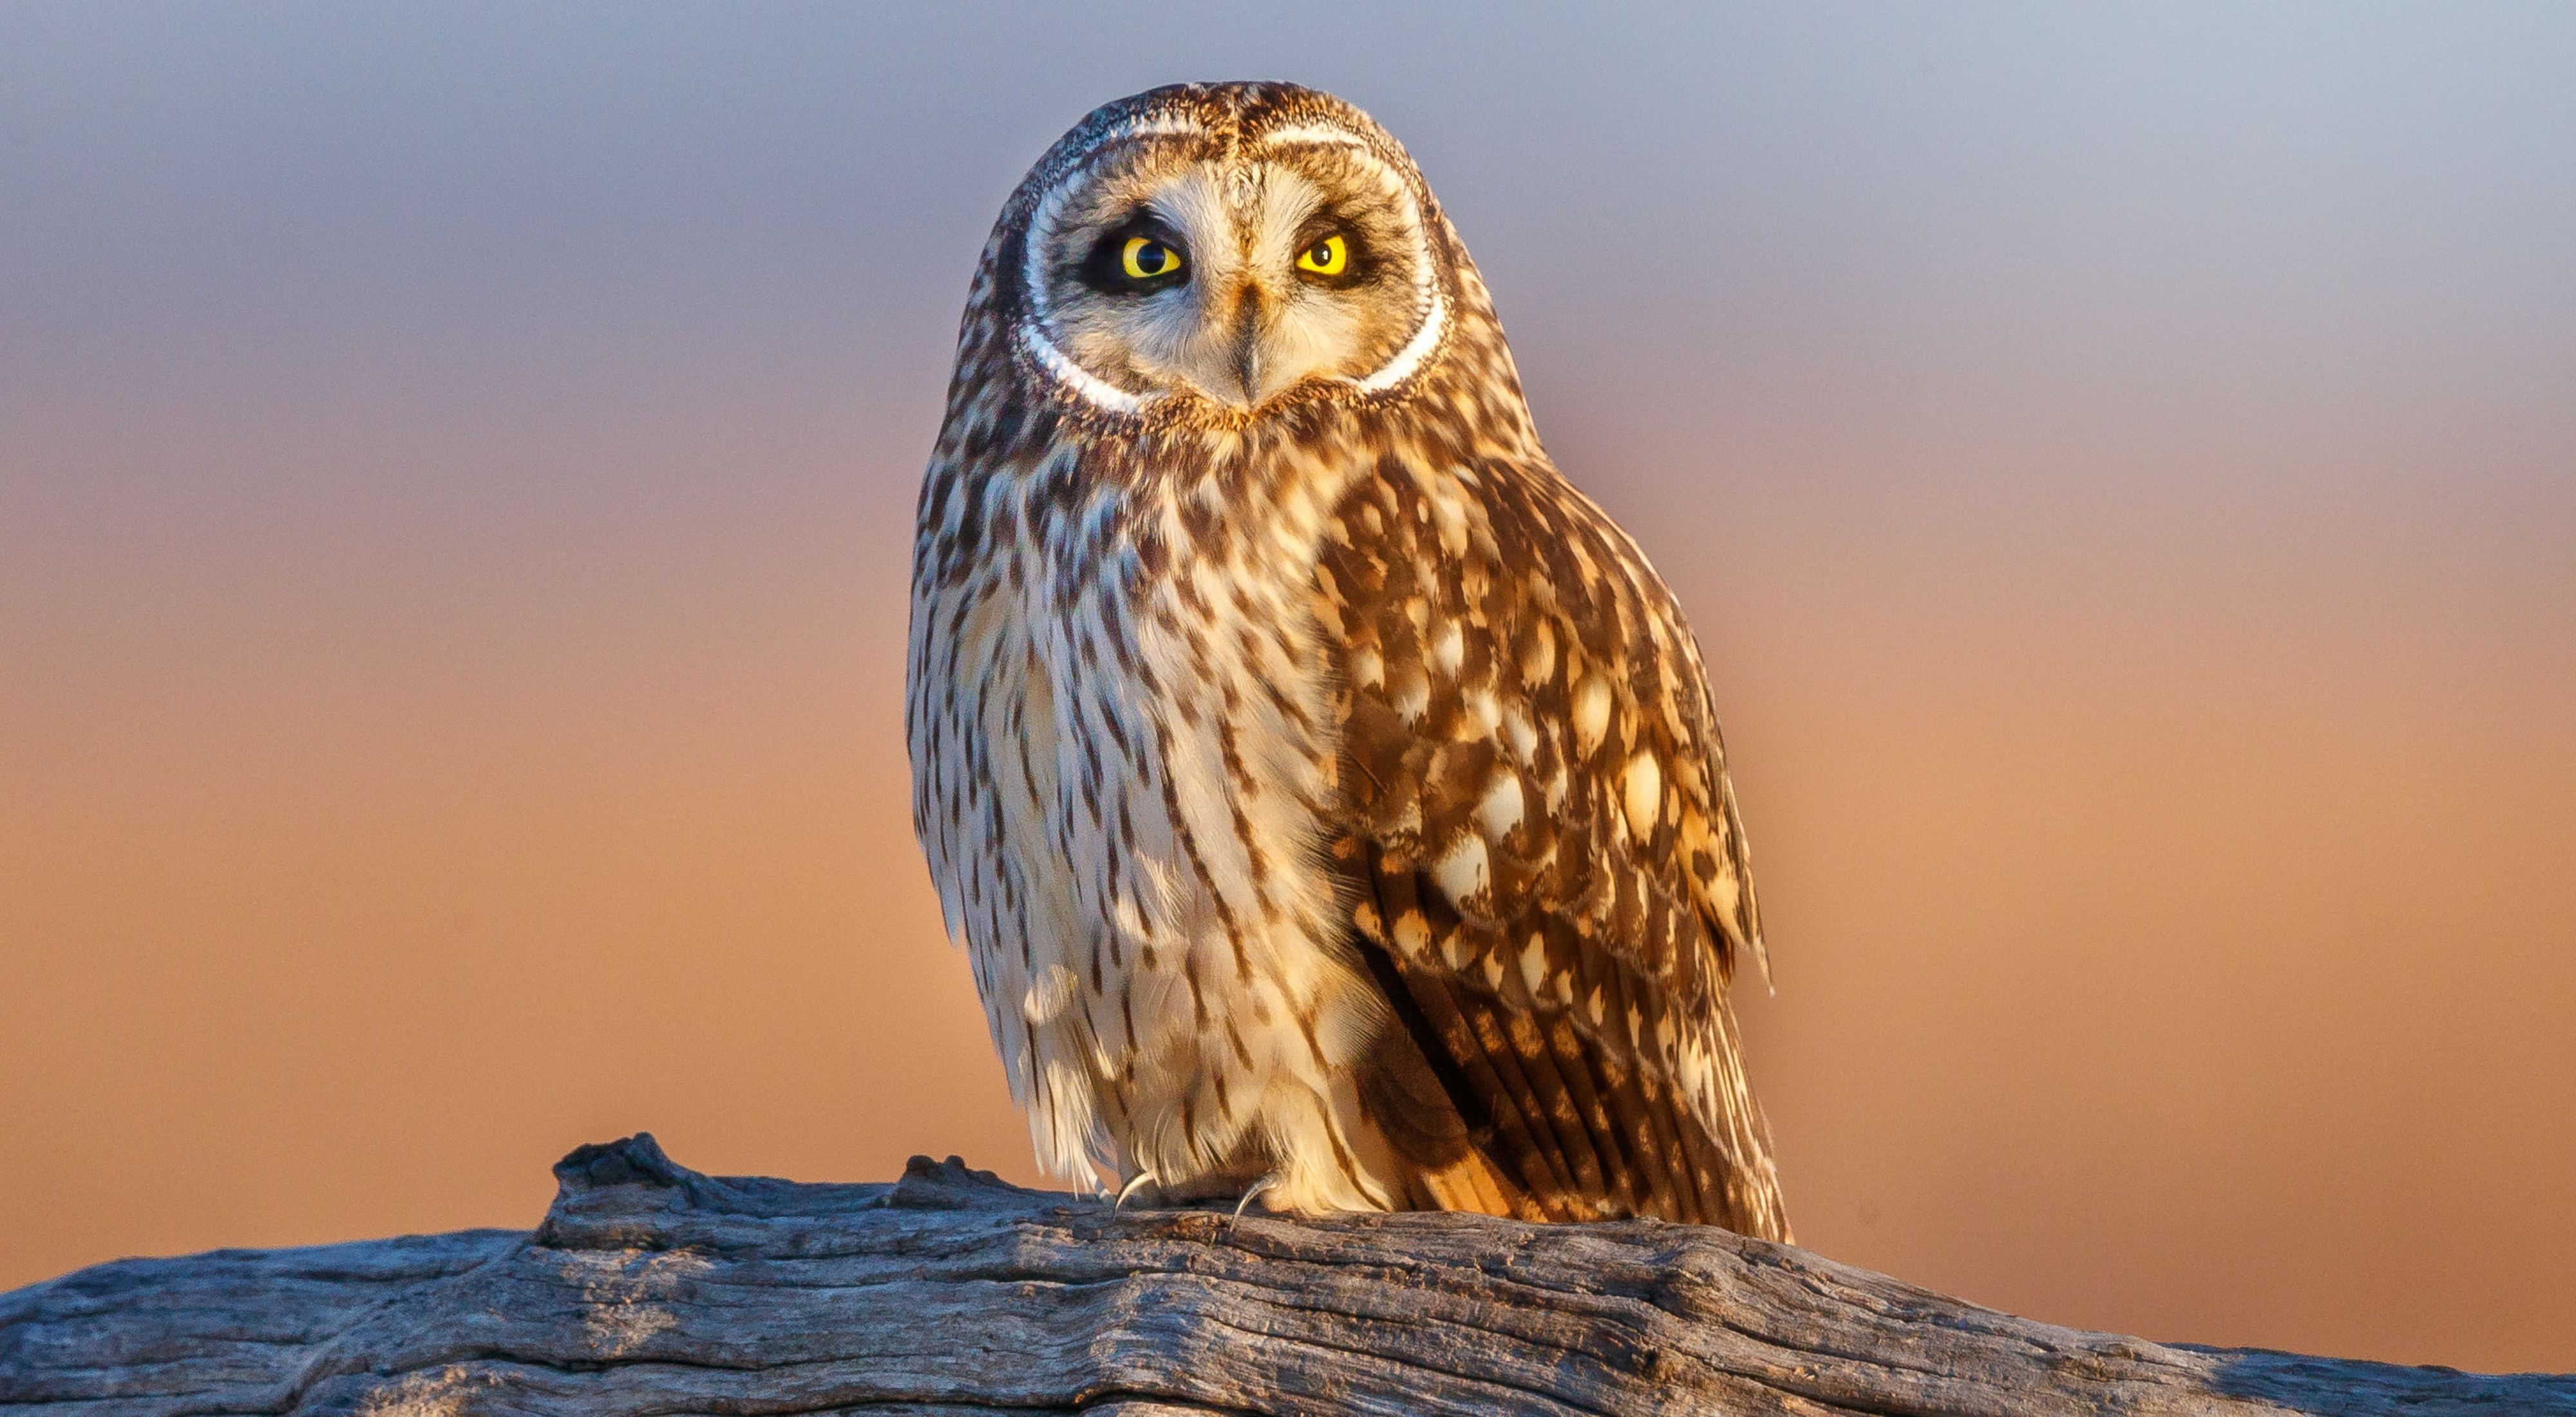 A short-eared owl rests on a log at sunset.